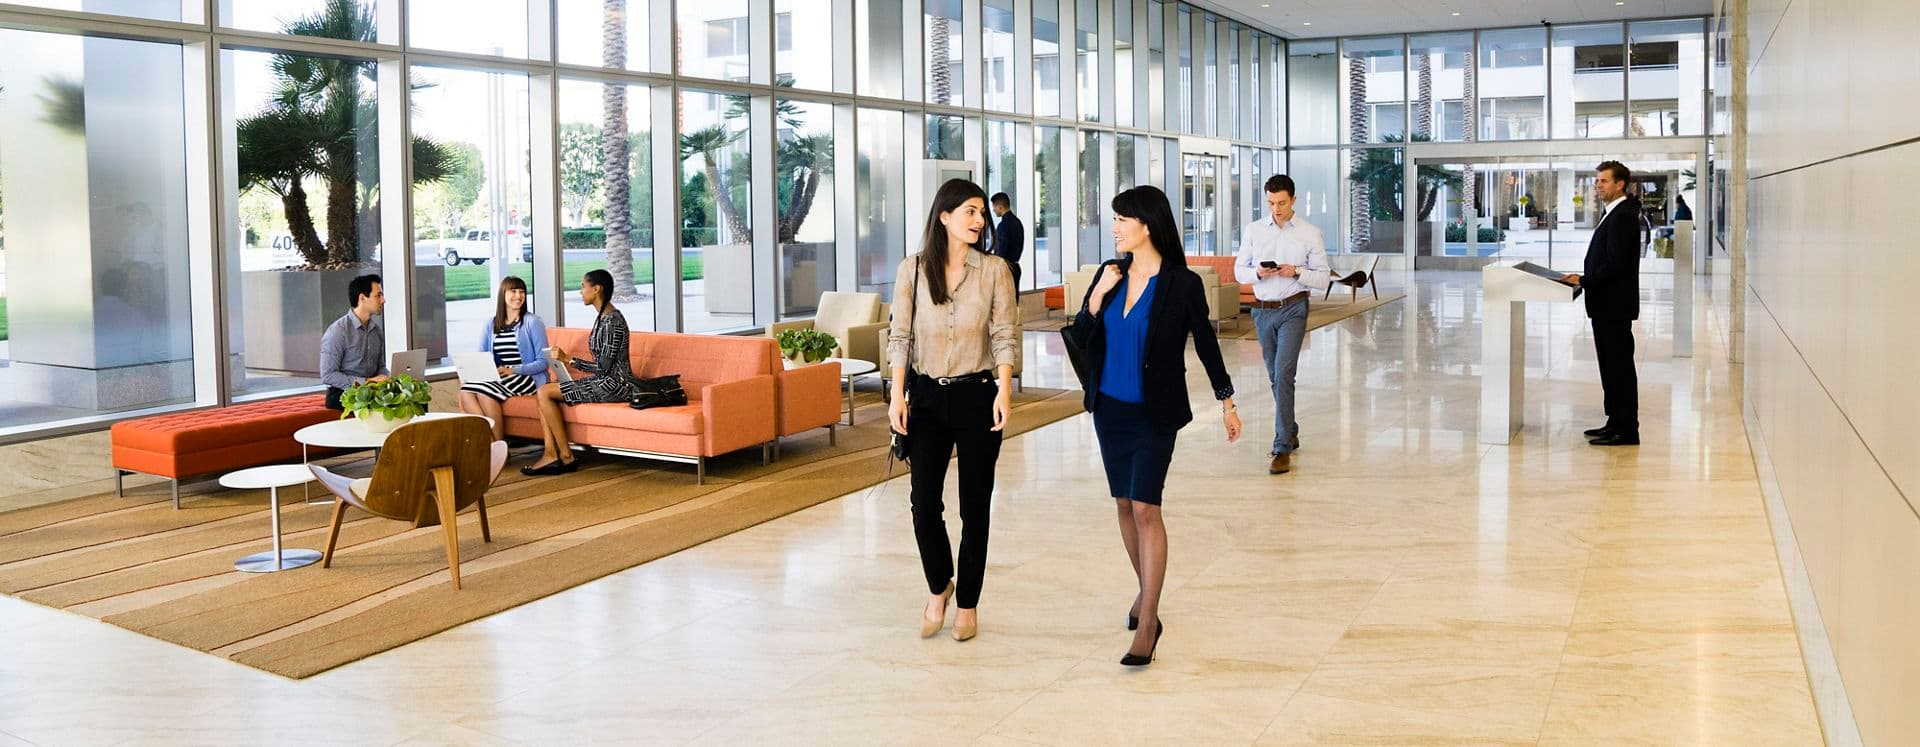 Lifestyle photography of the lobby at 400 Spectrum Center, Irvine, Ca